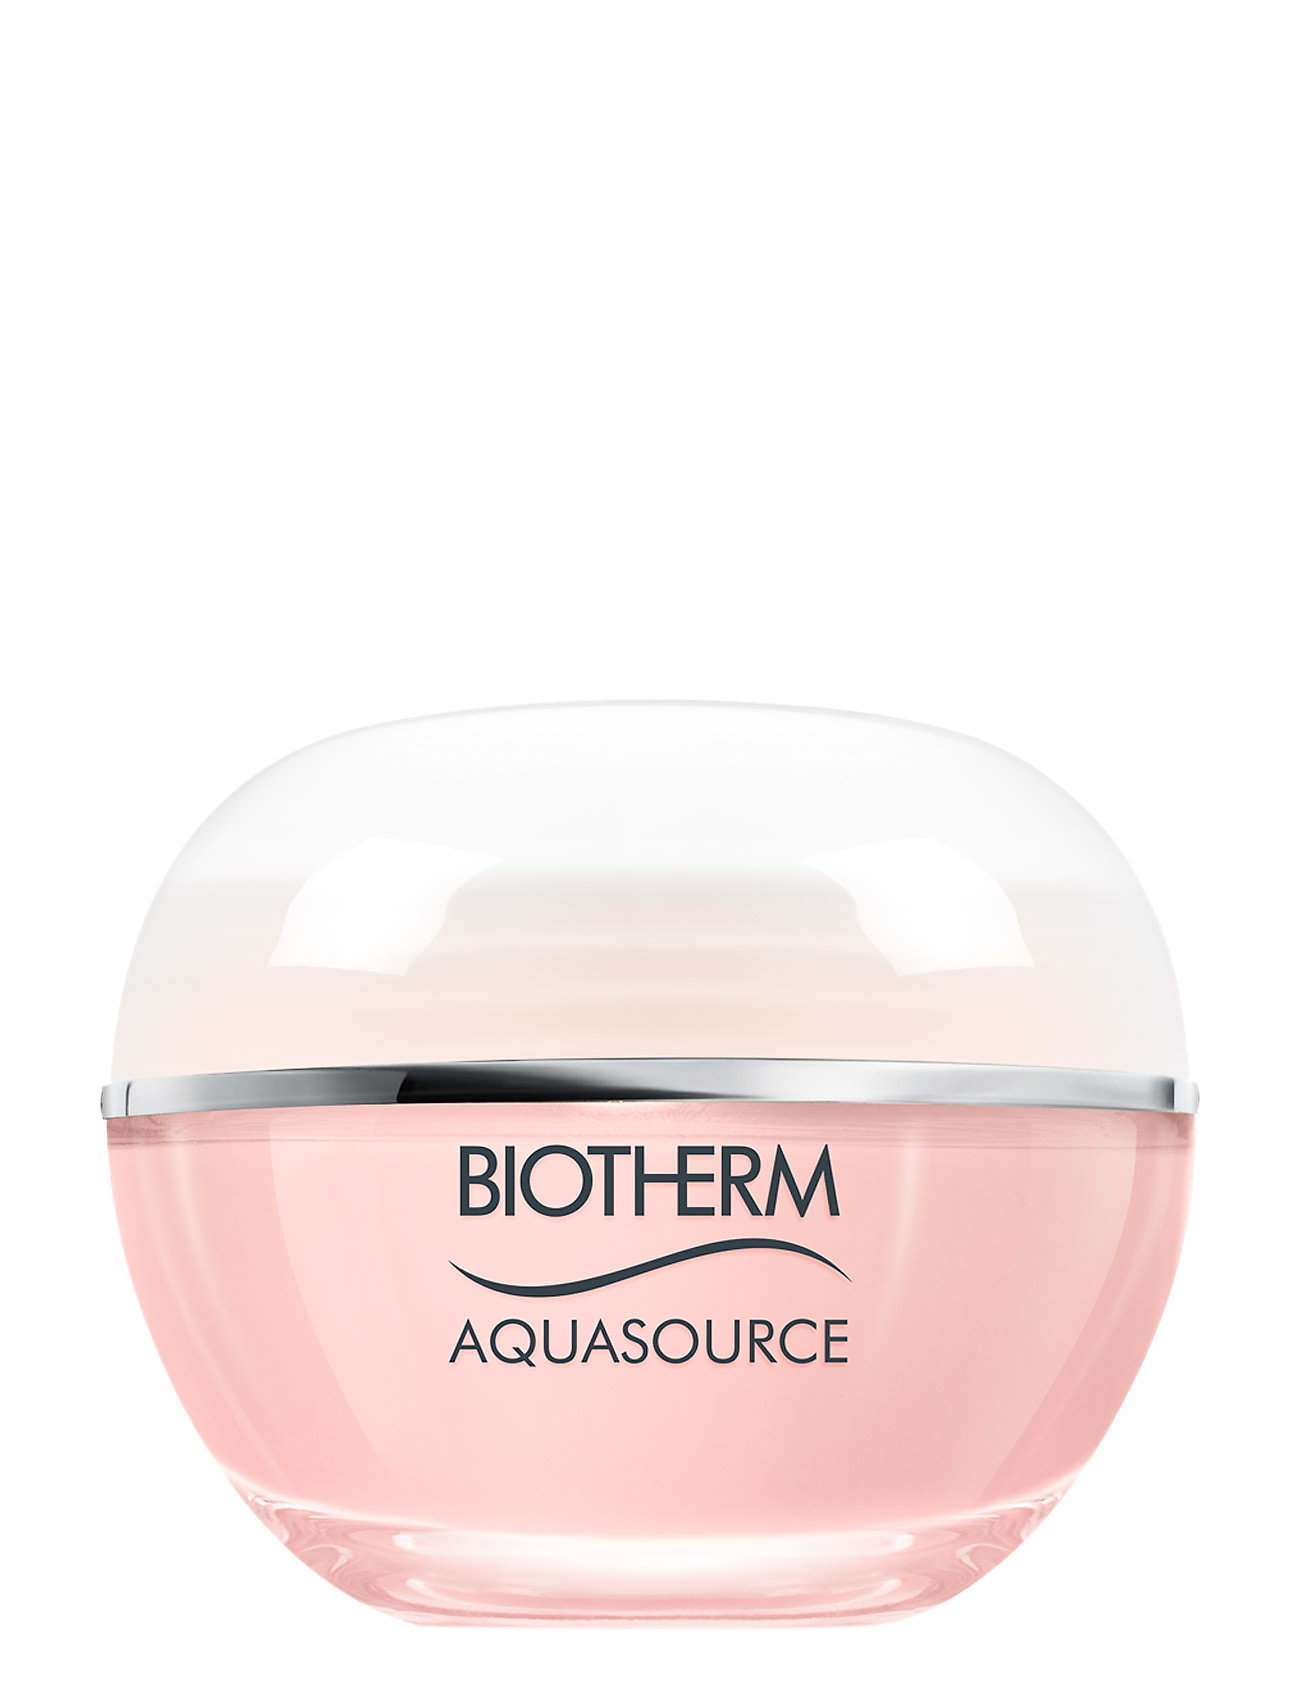 biotherm – Aquasource cream ps 30 ml på boozt.com dk